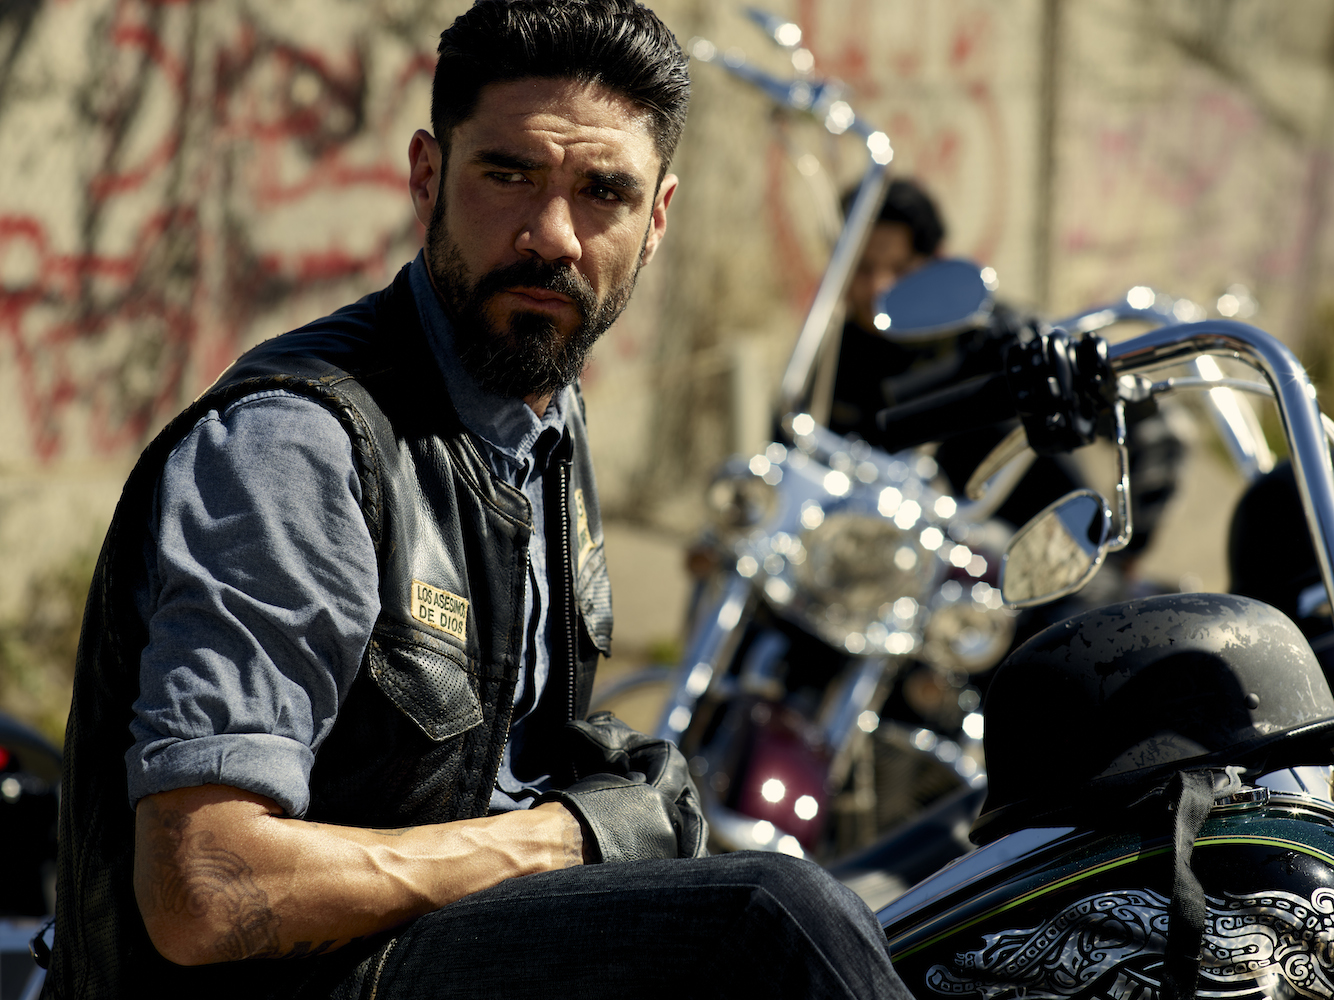 'Mayans MC' Season 2 Is Coming This Fall